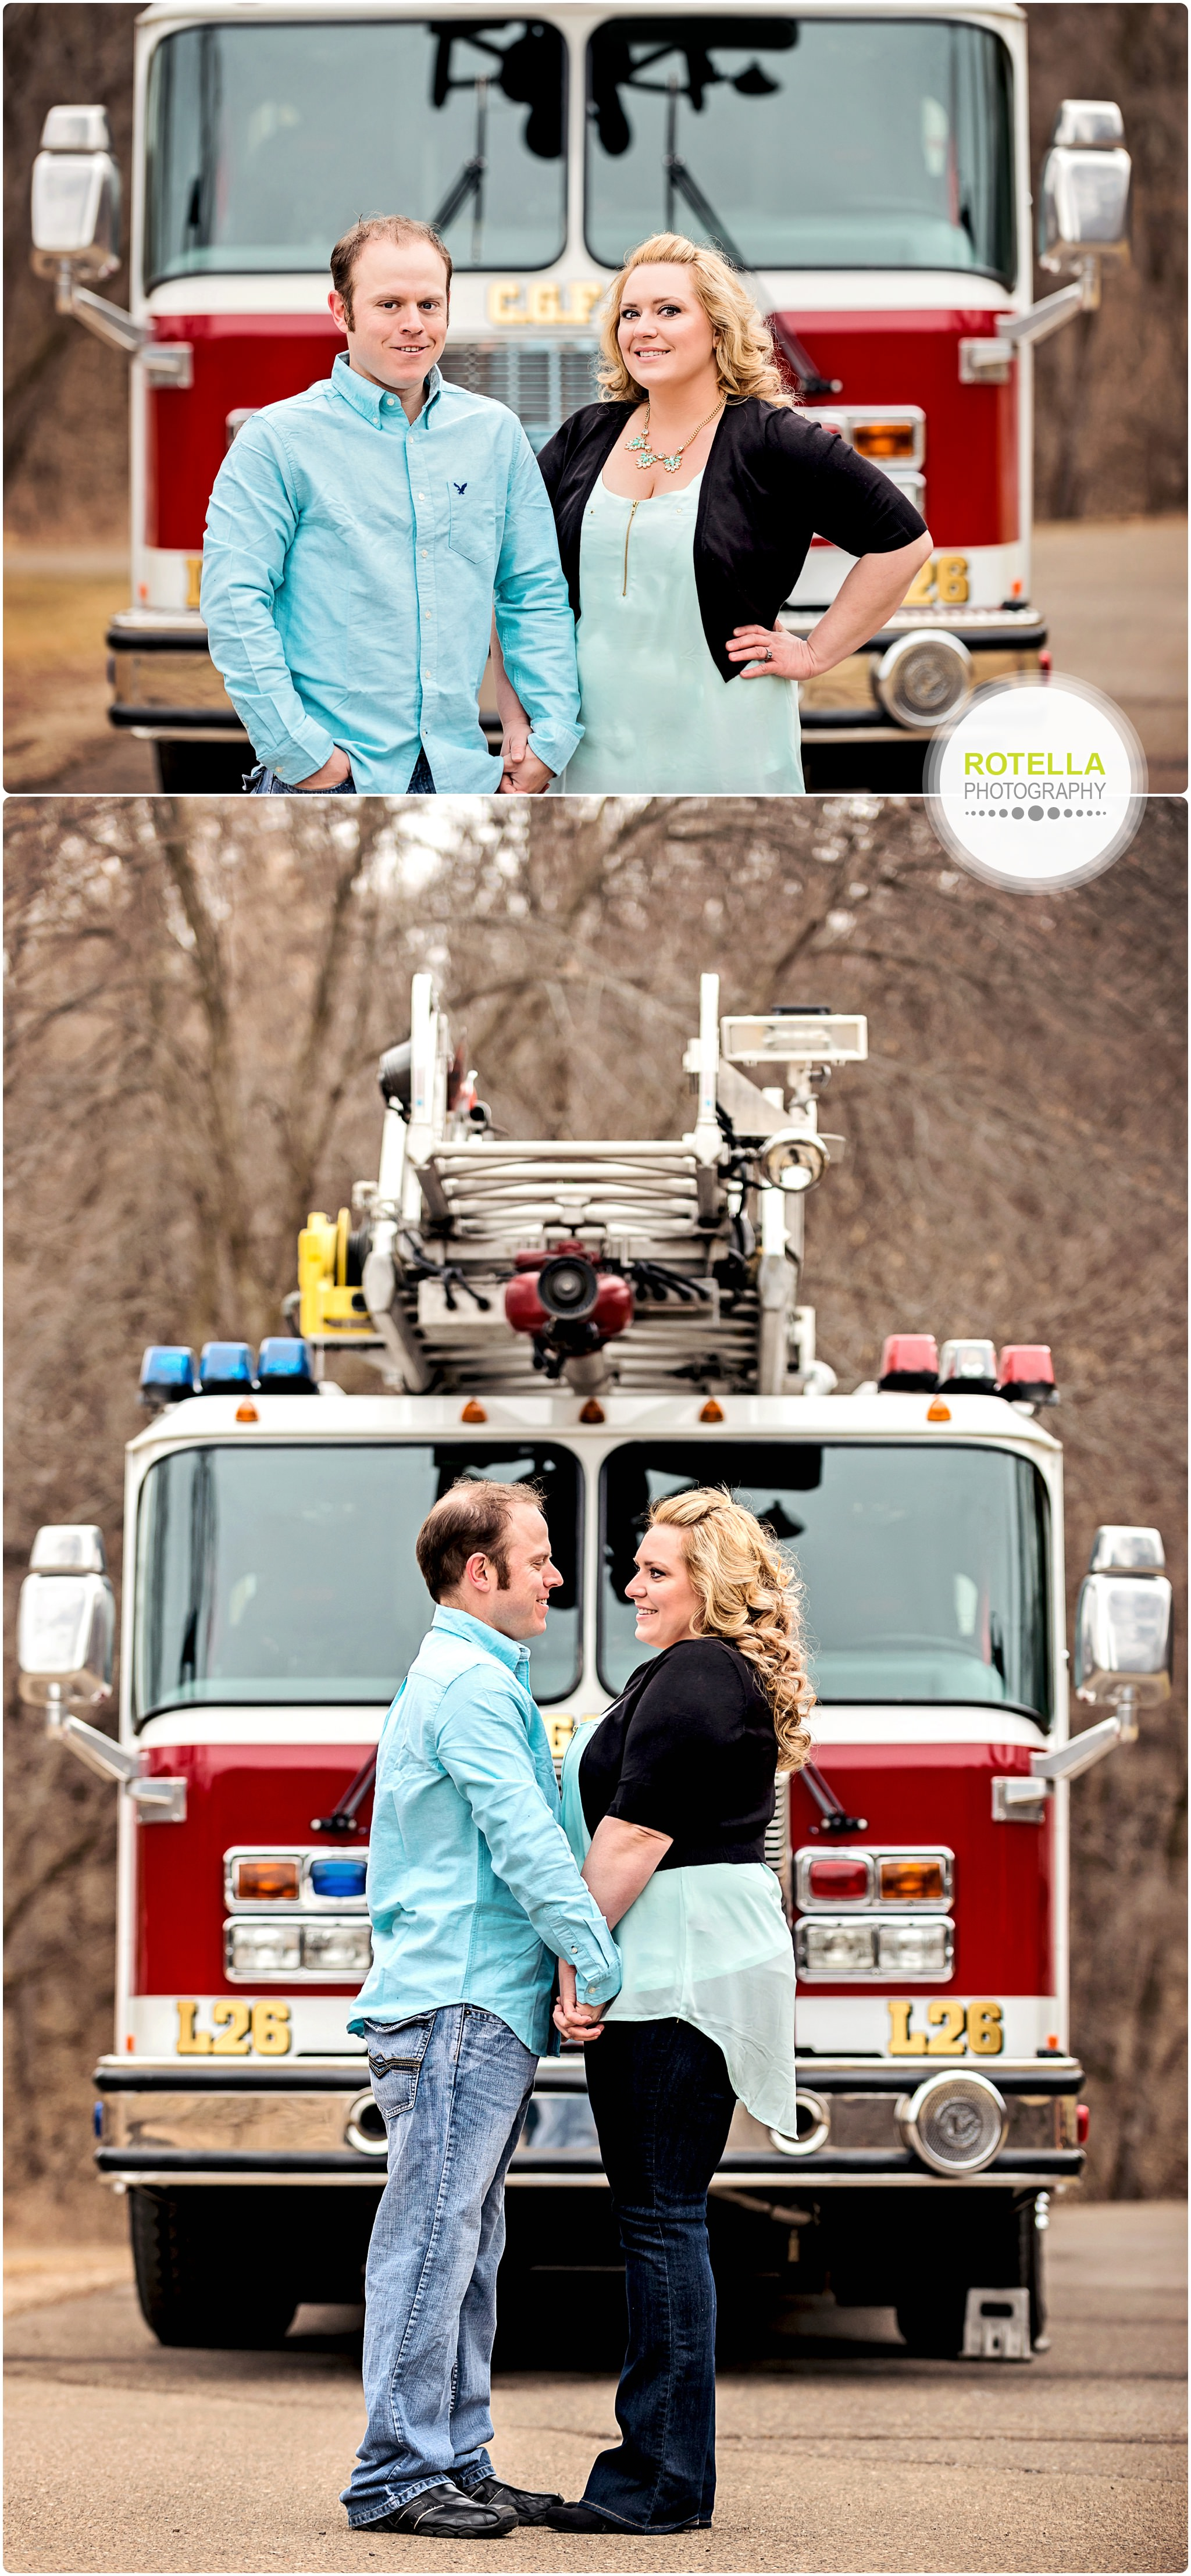 A-M-Minneapolis-Engagement-Photography-Rotella-Photography-2015_0012